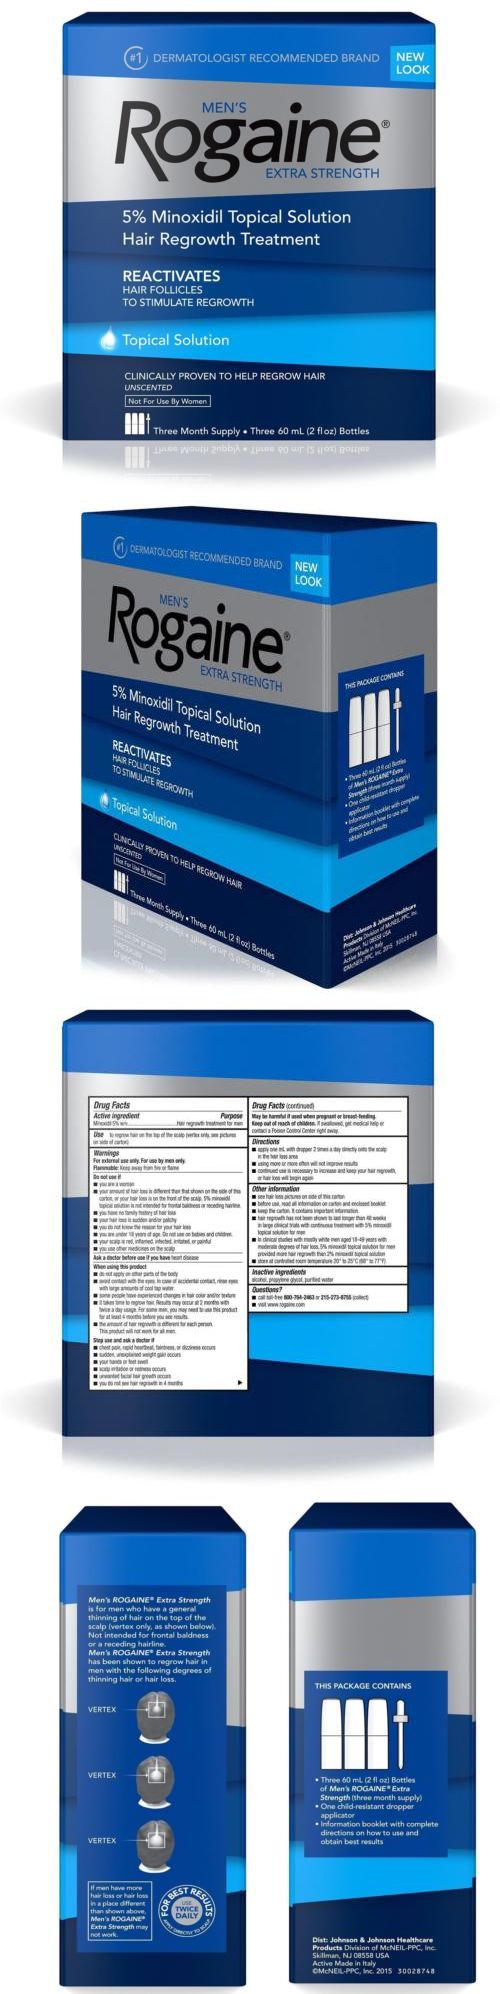 Hair Loss Treatments: Rogaine Men S Extra Strength Solution 3-Mo Hair Regrowth Treatment Follicle Chop -> BUY IT NOW ONLY: $40.99 on eBay!